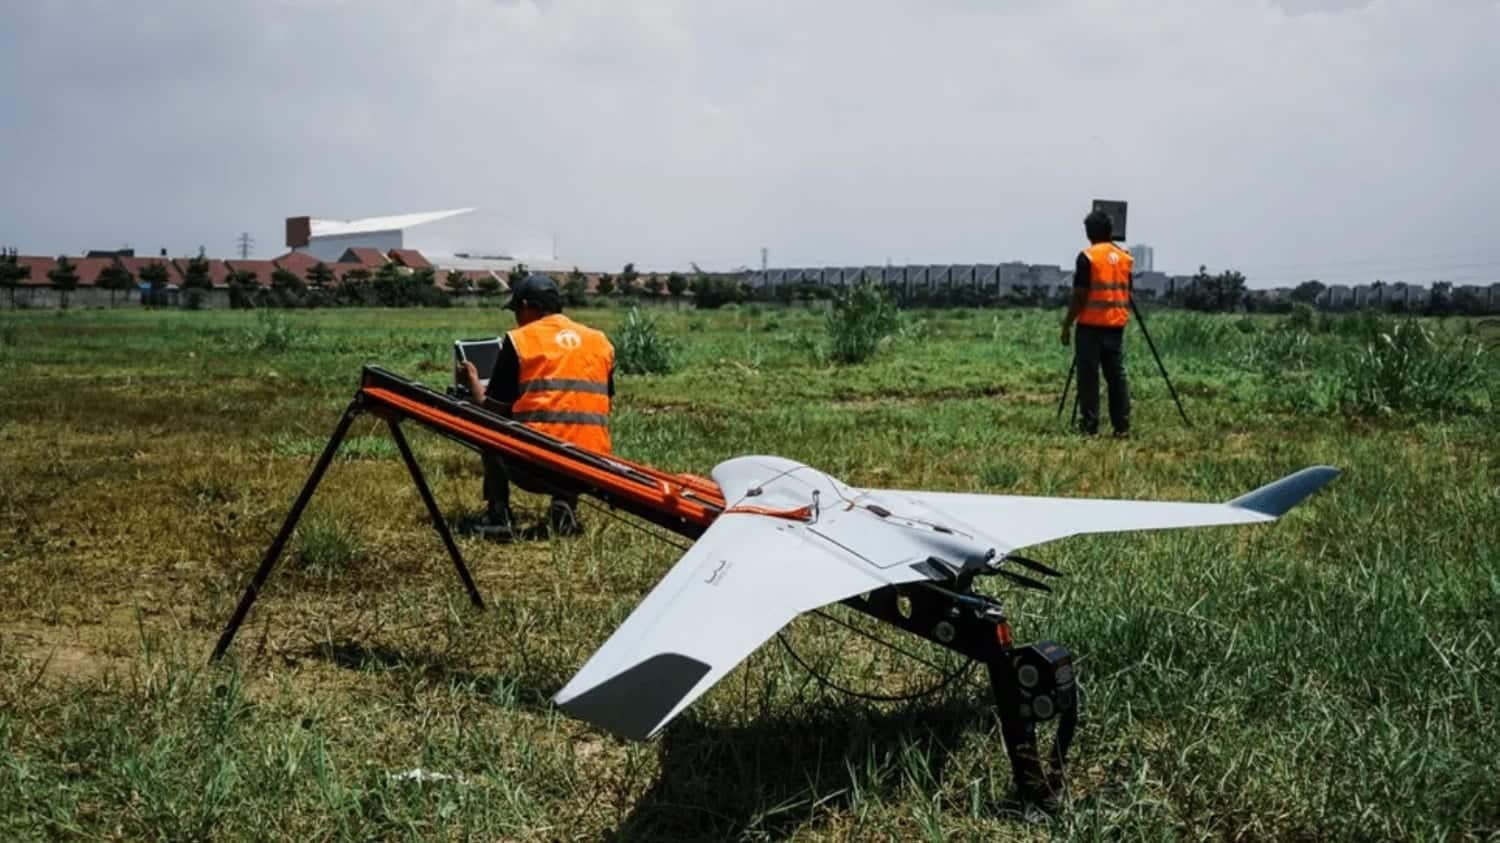 Terra Drone solidifies South East Asia presence with new base in Malaysia